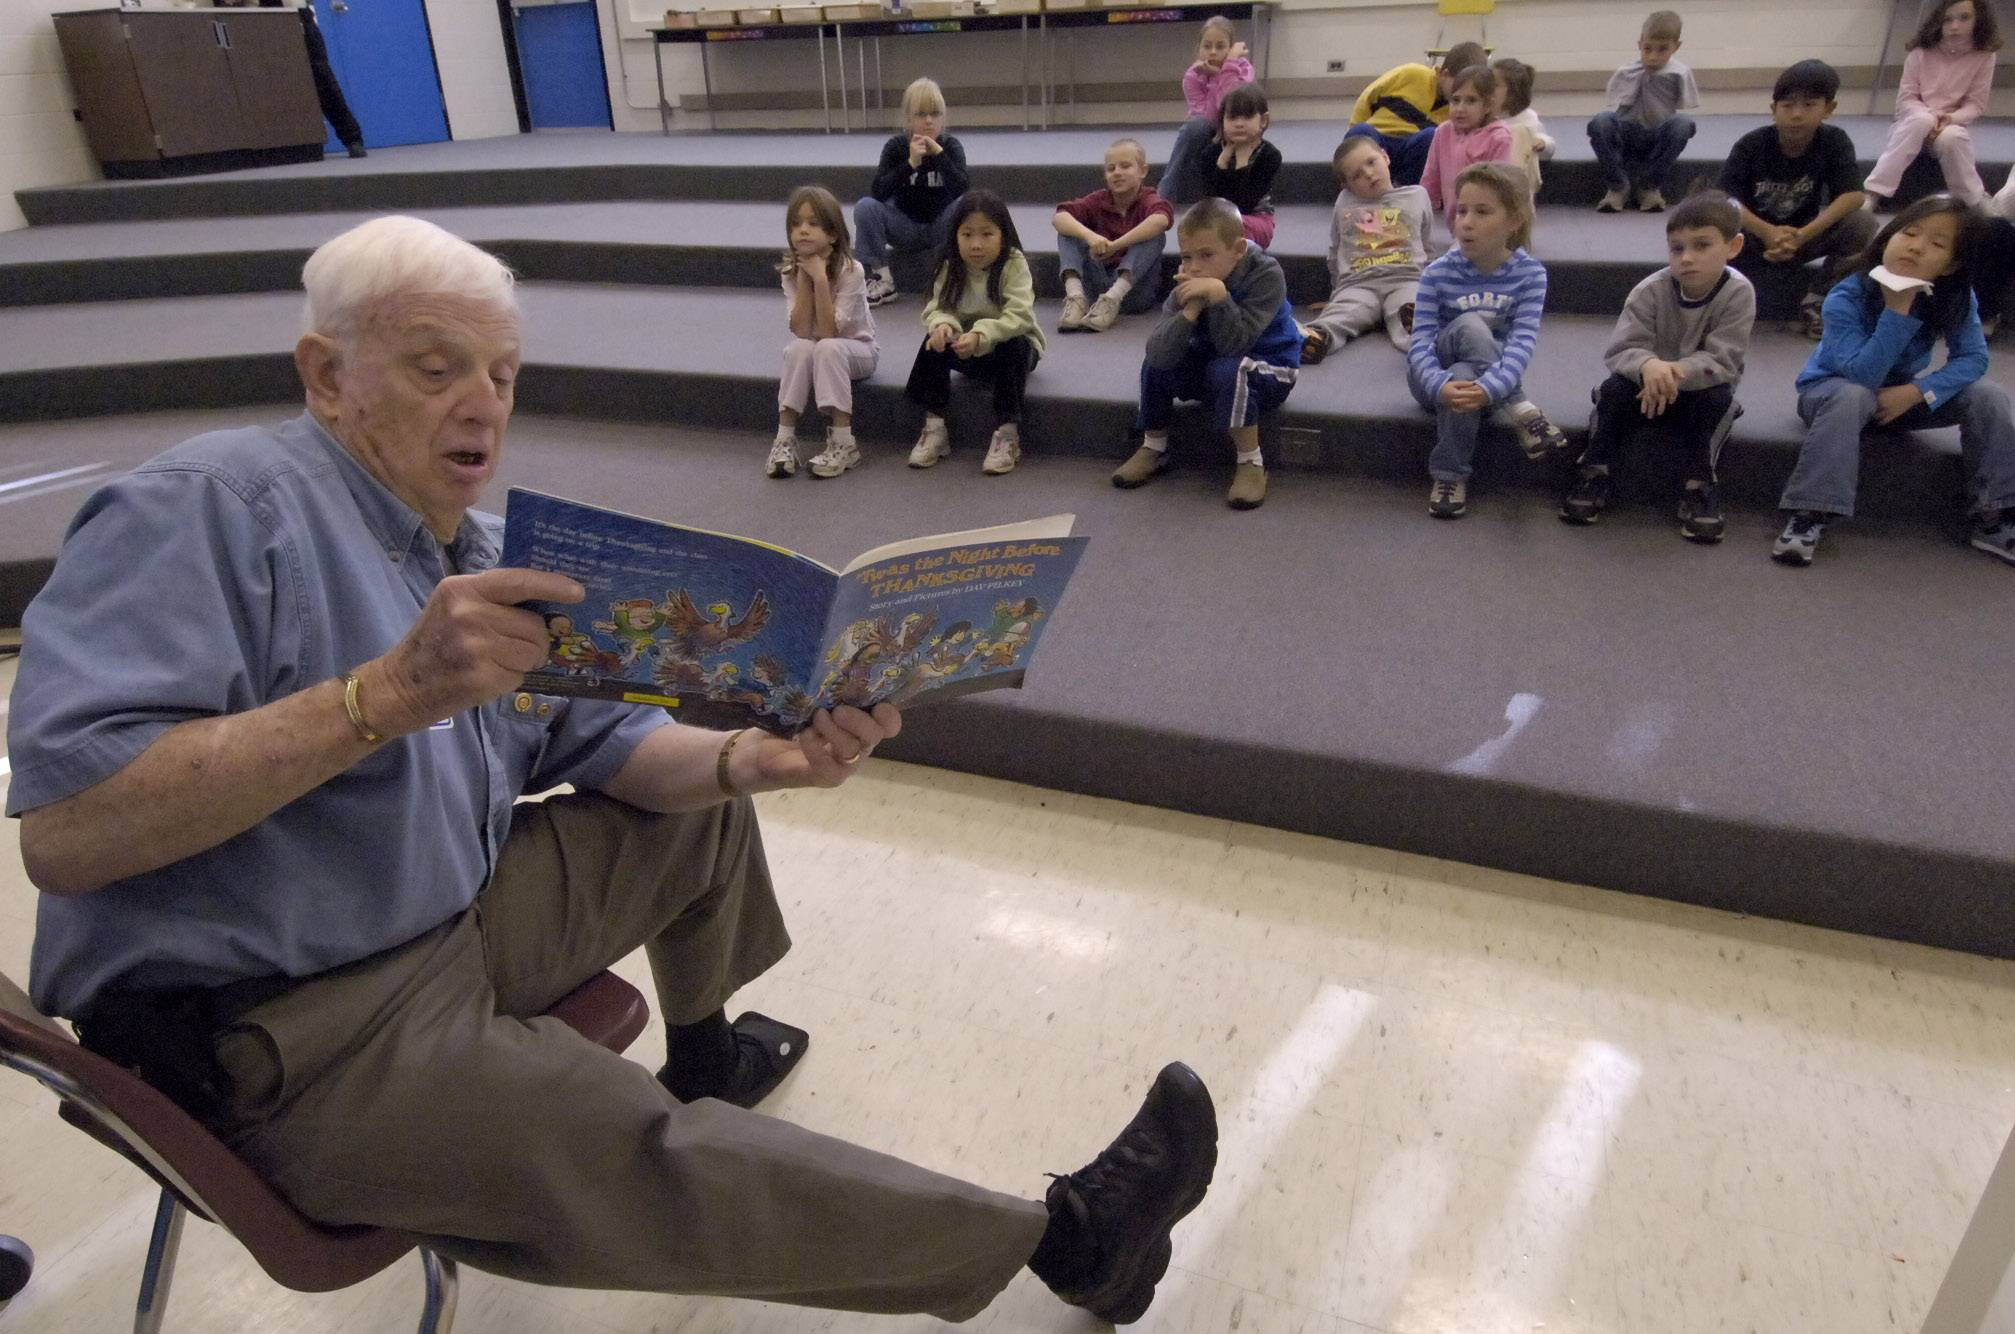 Buffalo Grove resident Ernie Karge, shown reading to elementary students in 2005, was honored posthumously this week by village leaders. Karge spent decades serving the community through numerous clubs and organizations.